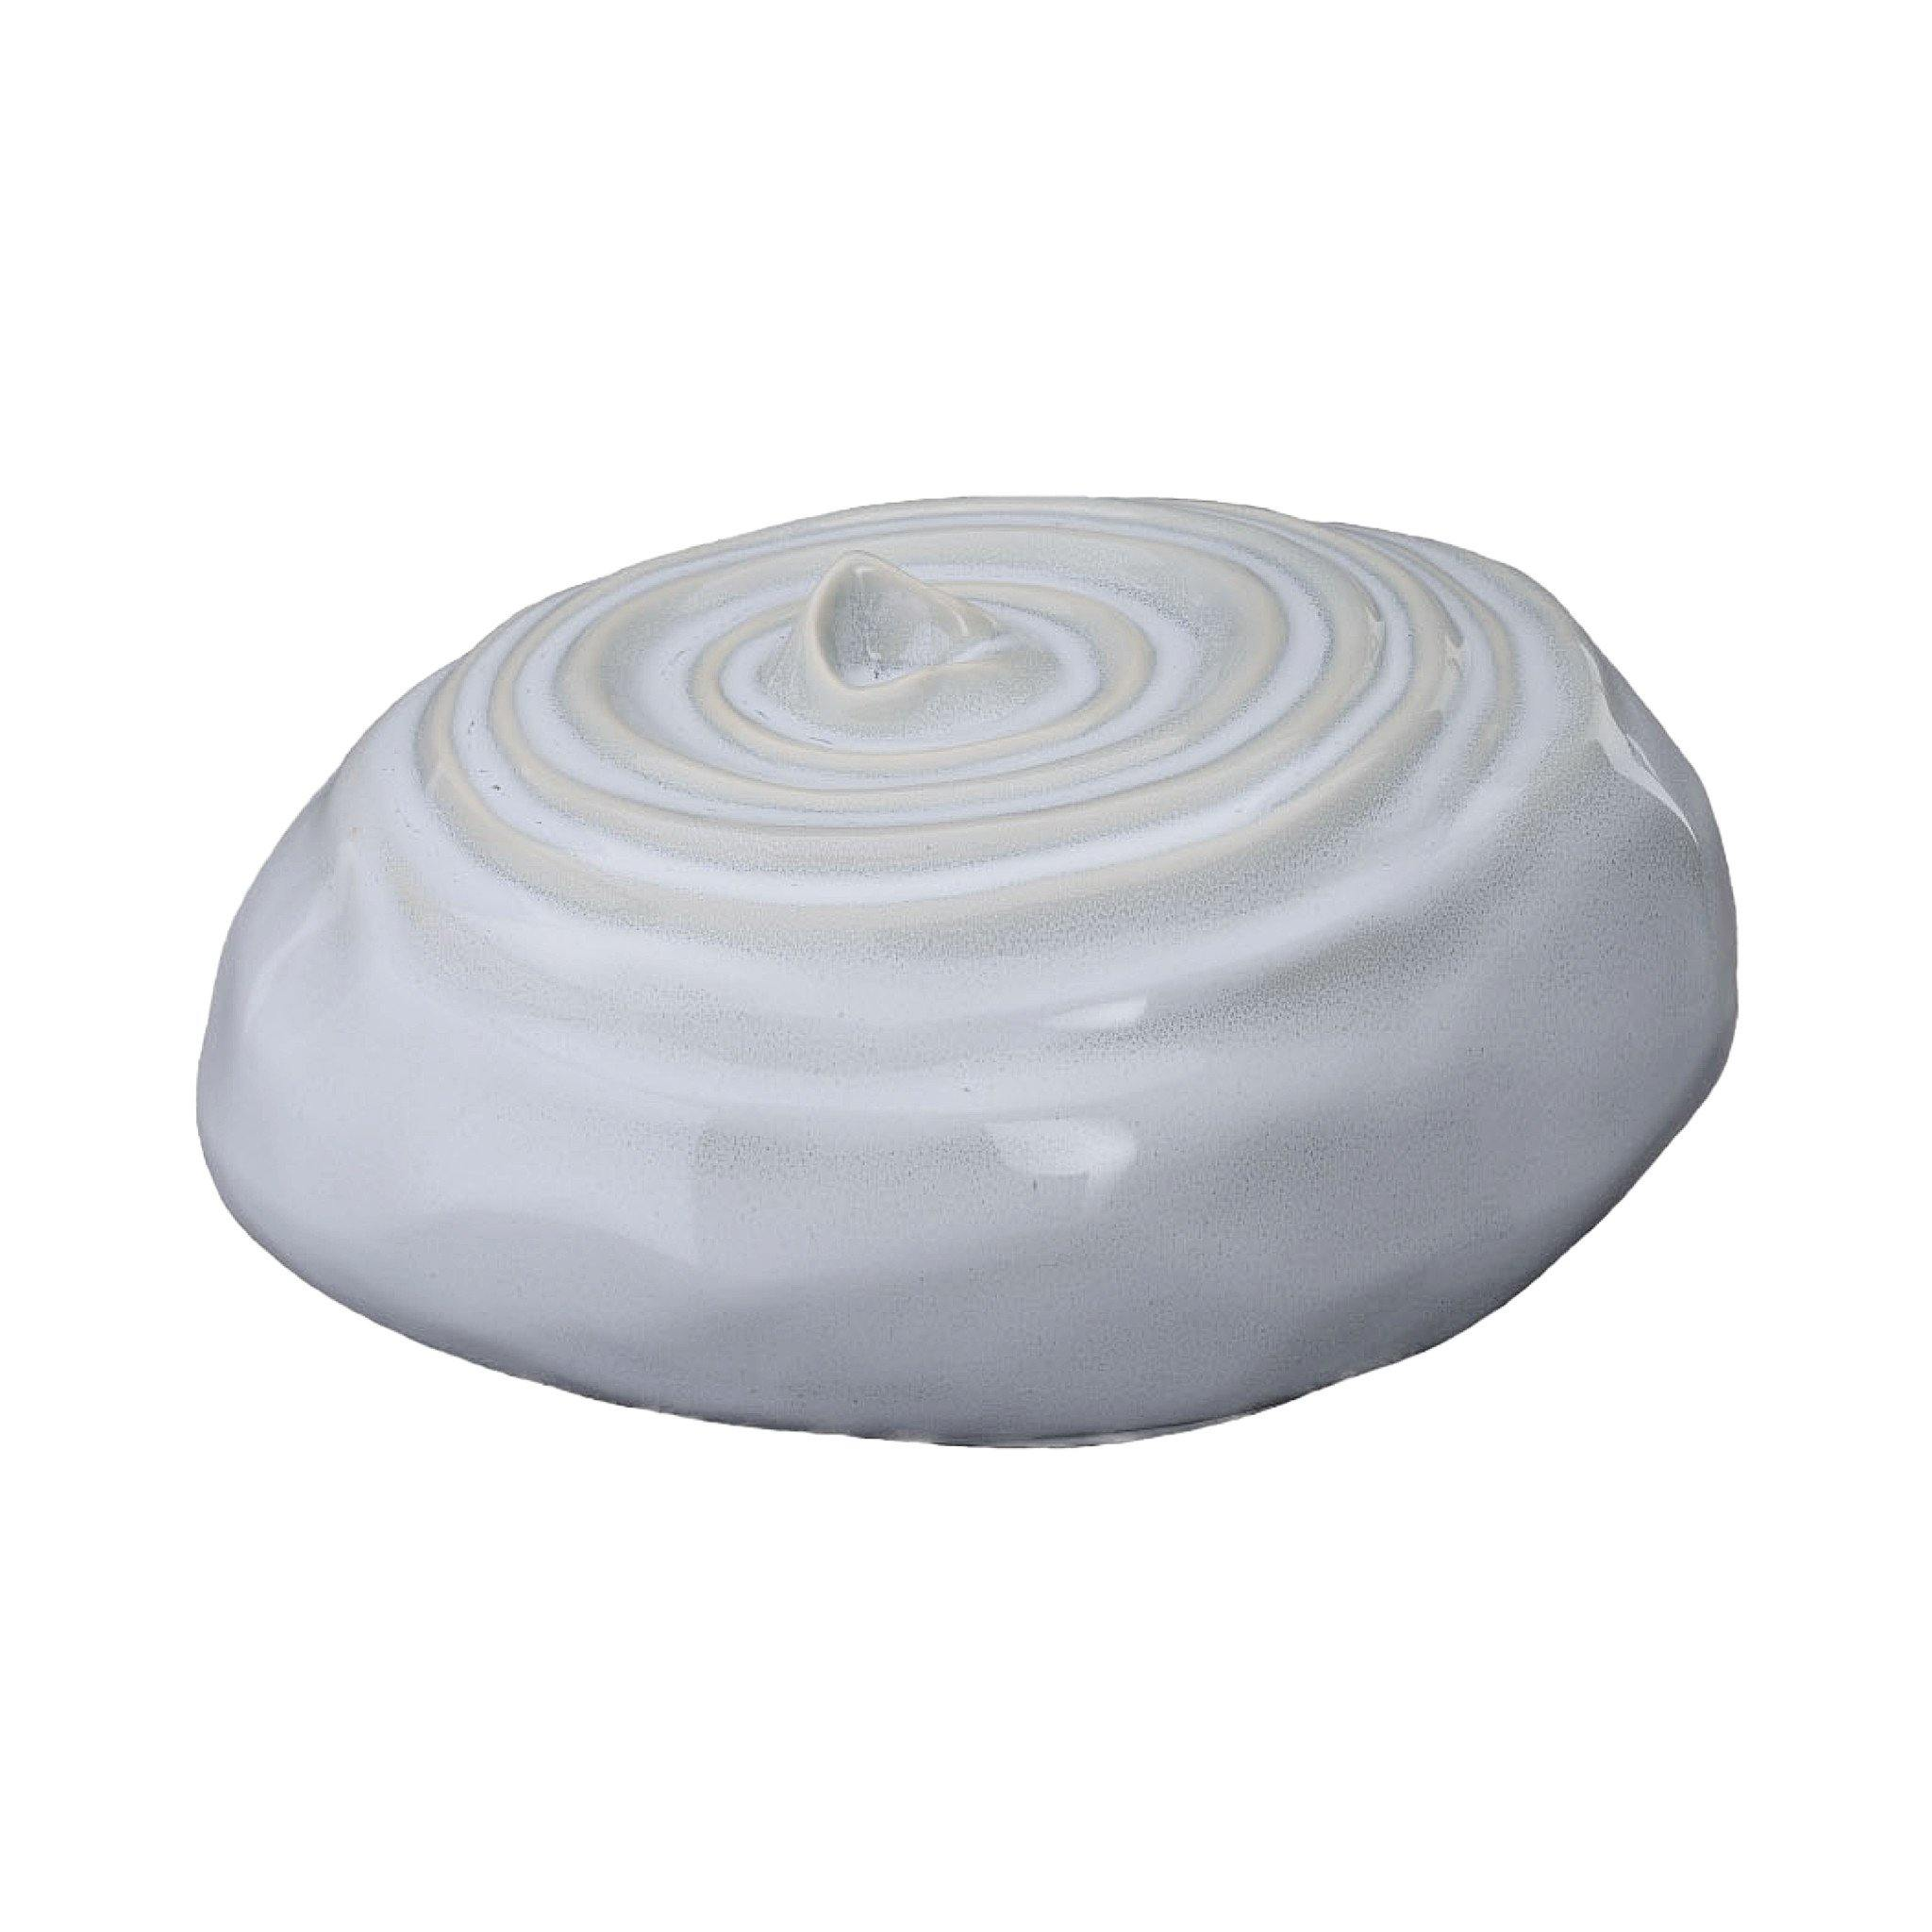 Ripples Large Cremation Ashes Urn Range - Urns UK